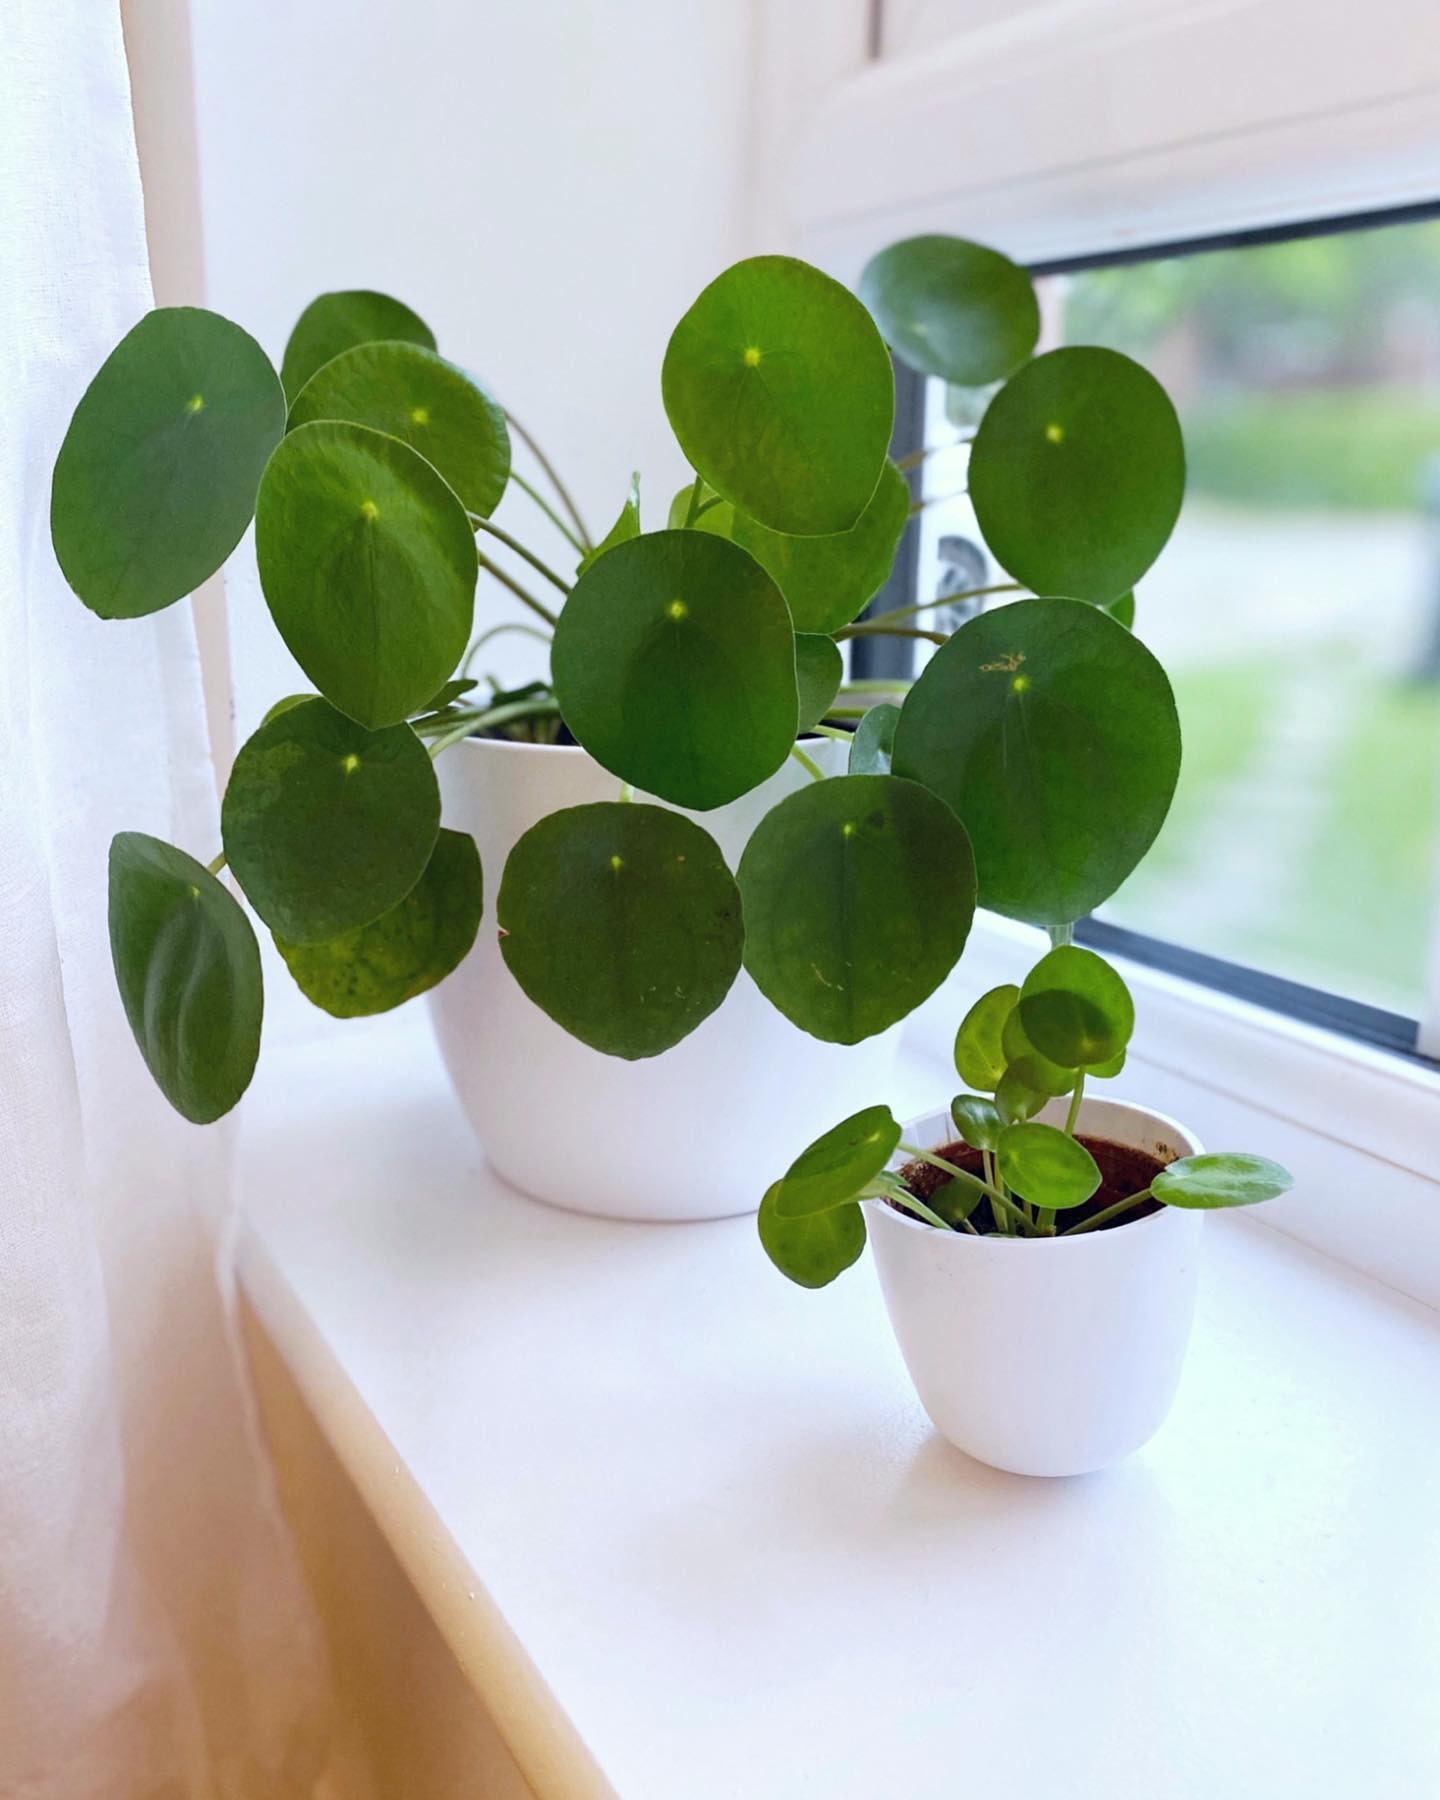 How to propagate a Pilea Peperomioides